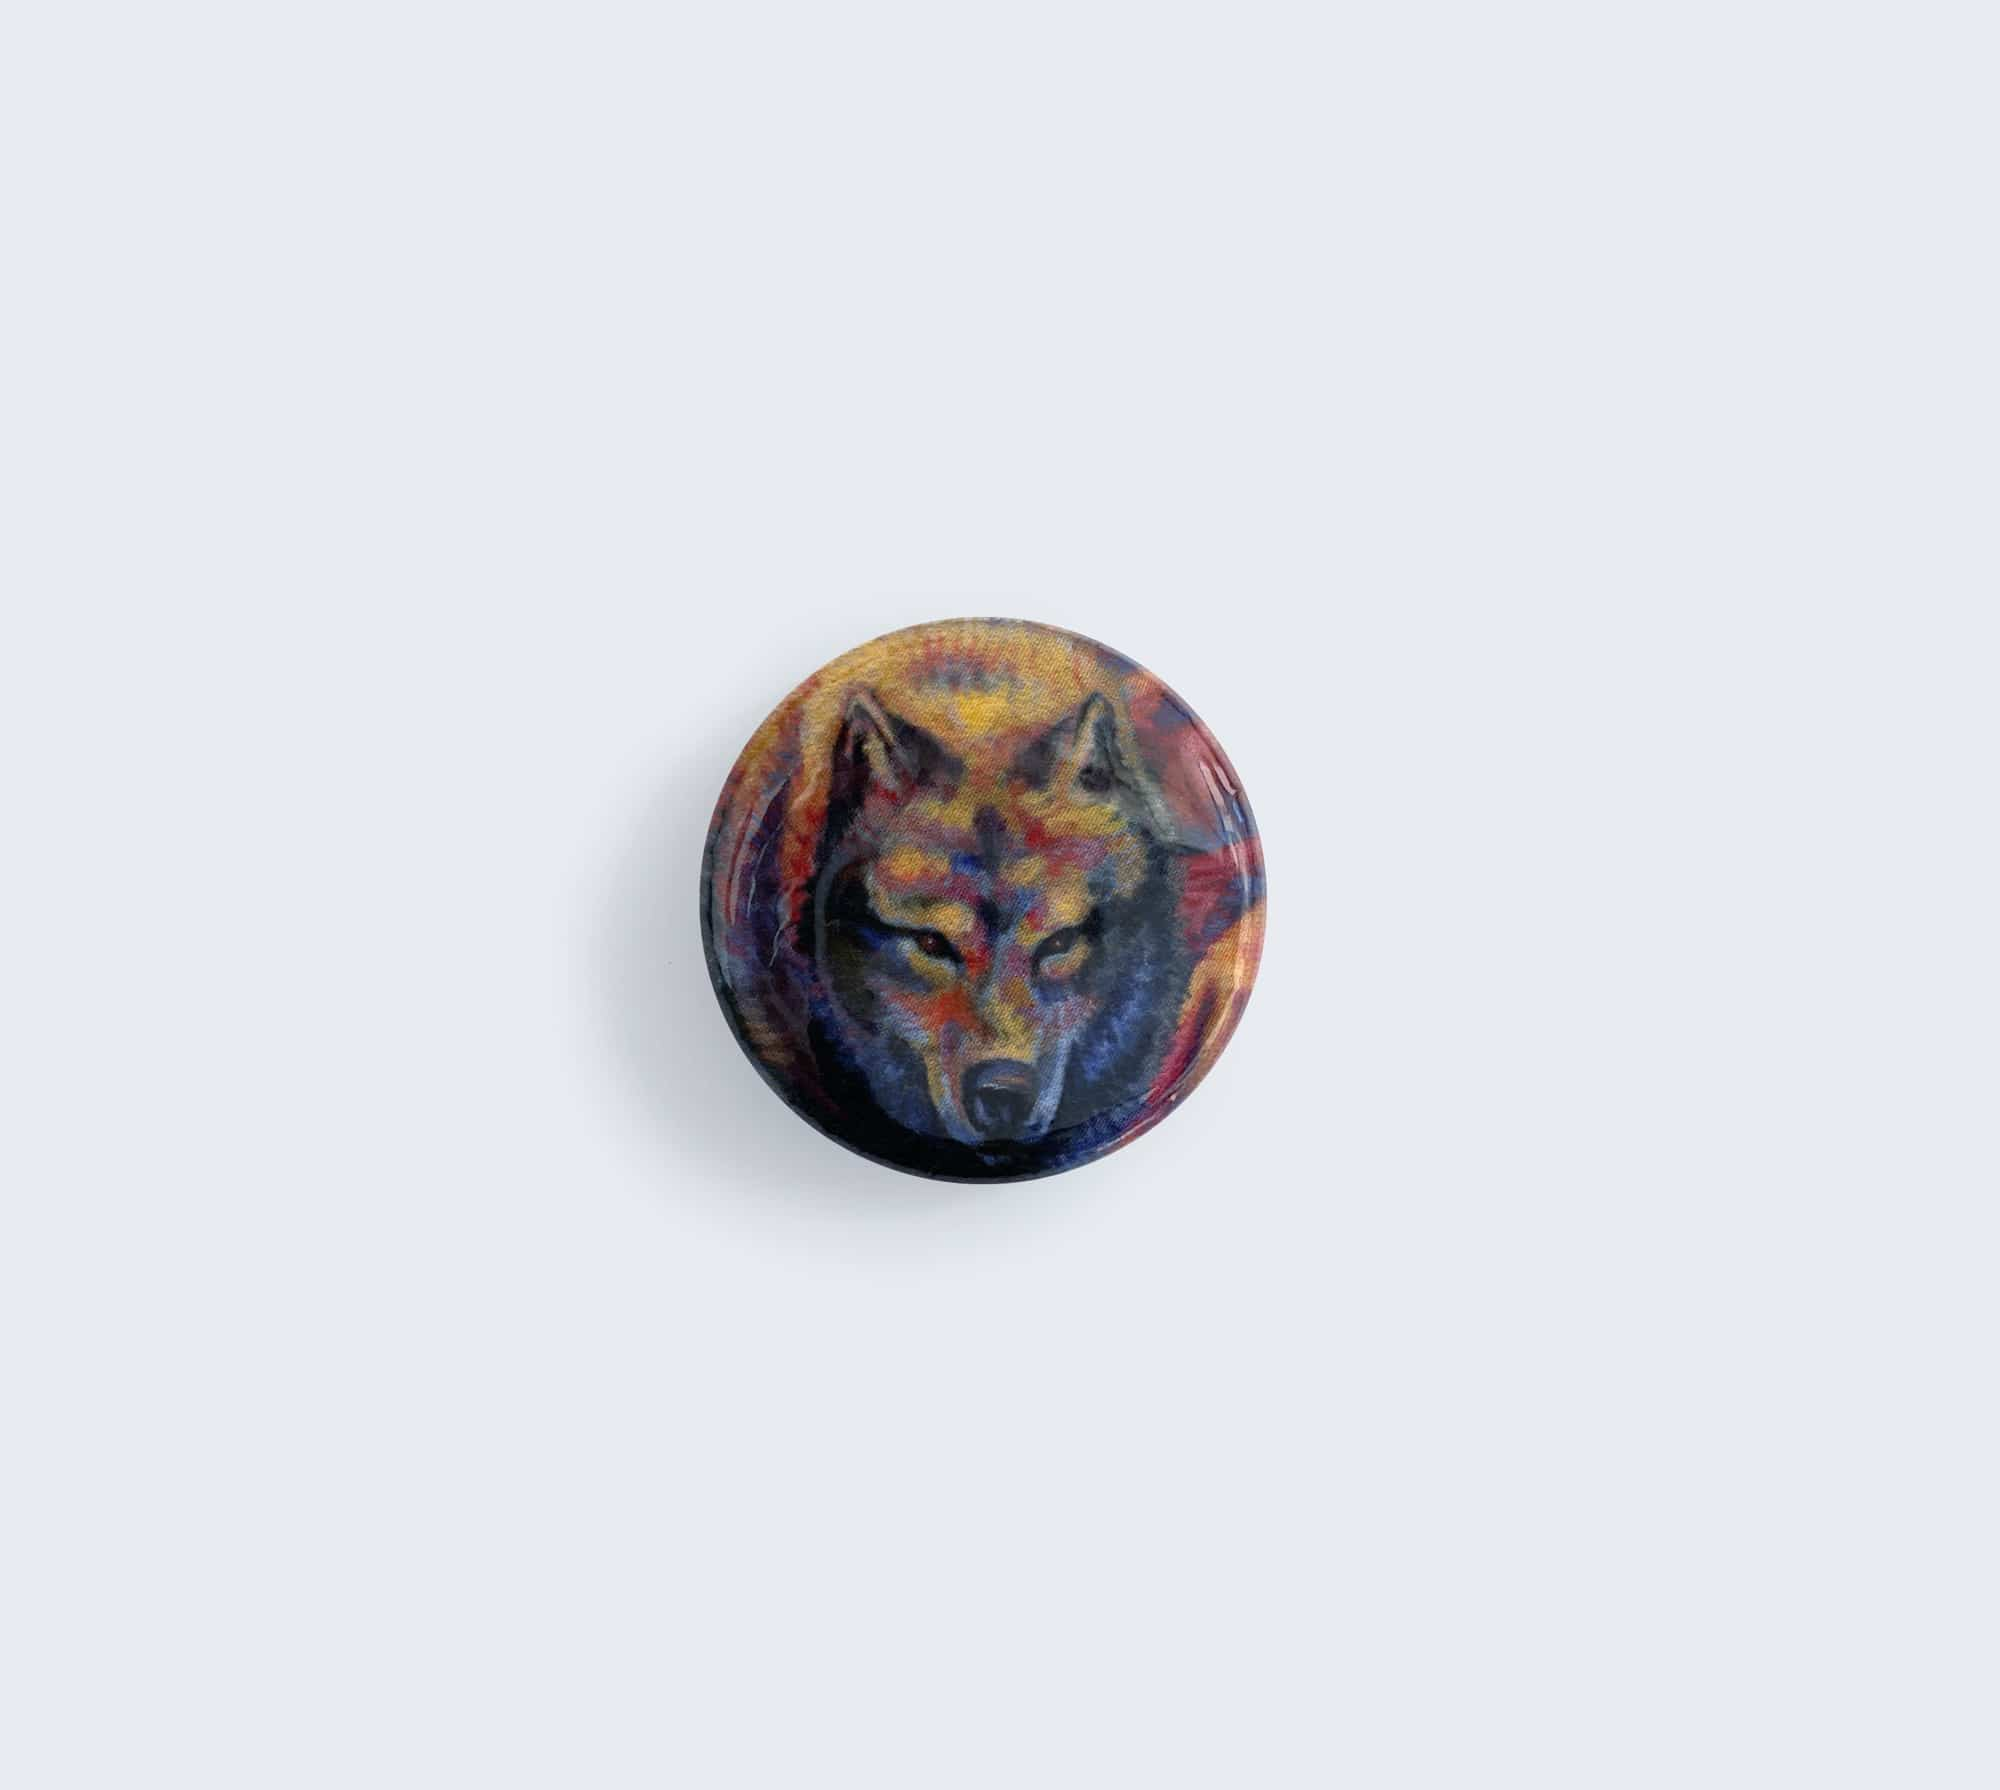 Wolf Head Button - Pin with Artwork by Rebecca Magar - Wailing Wizard